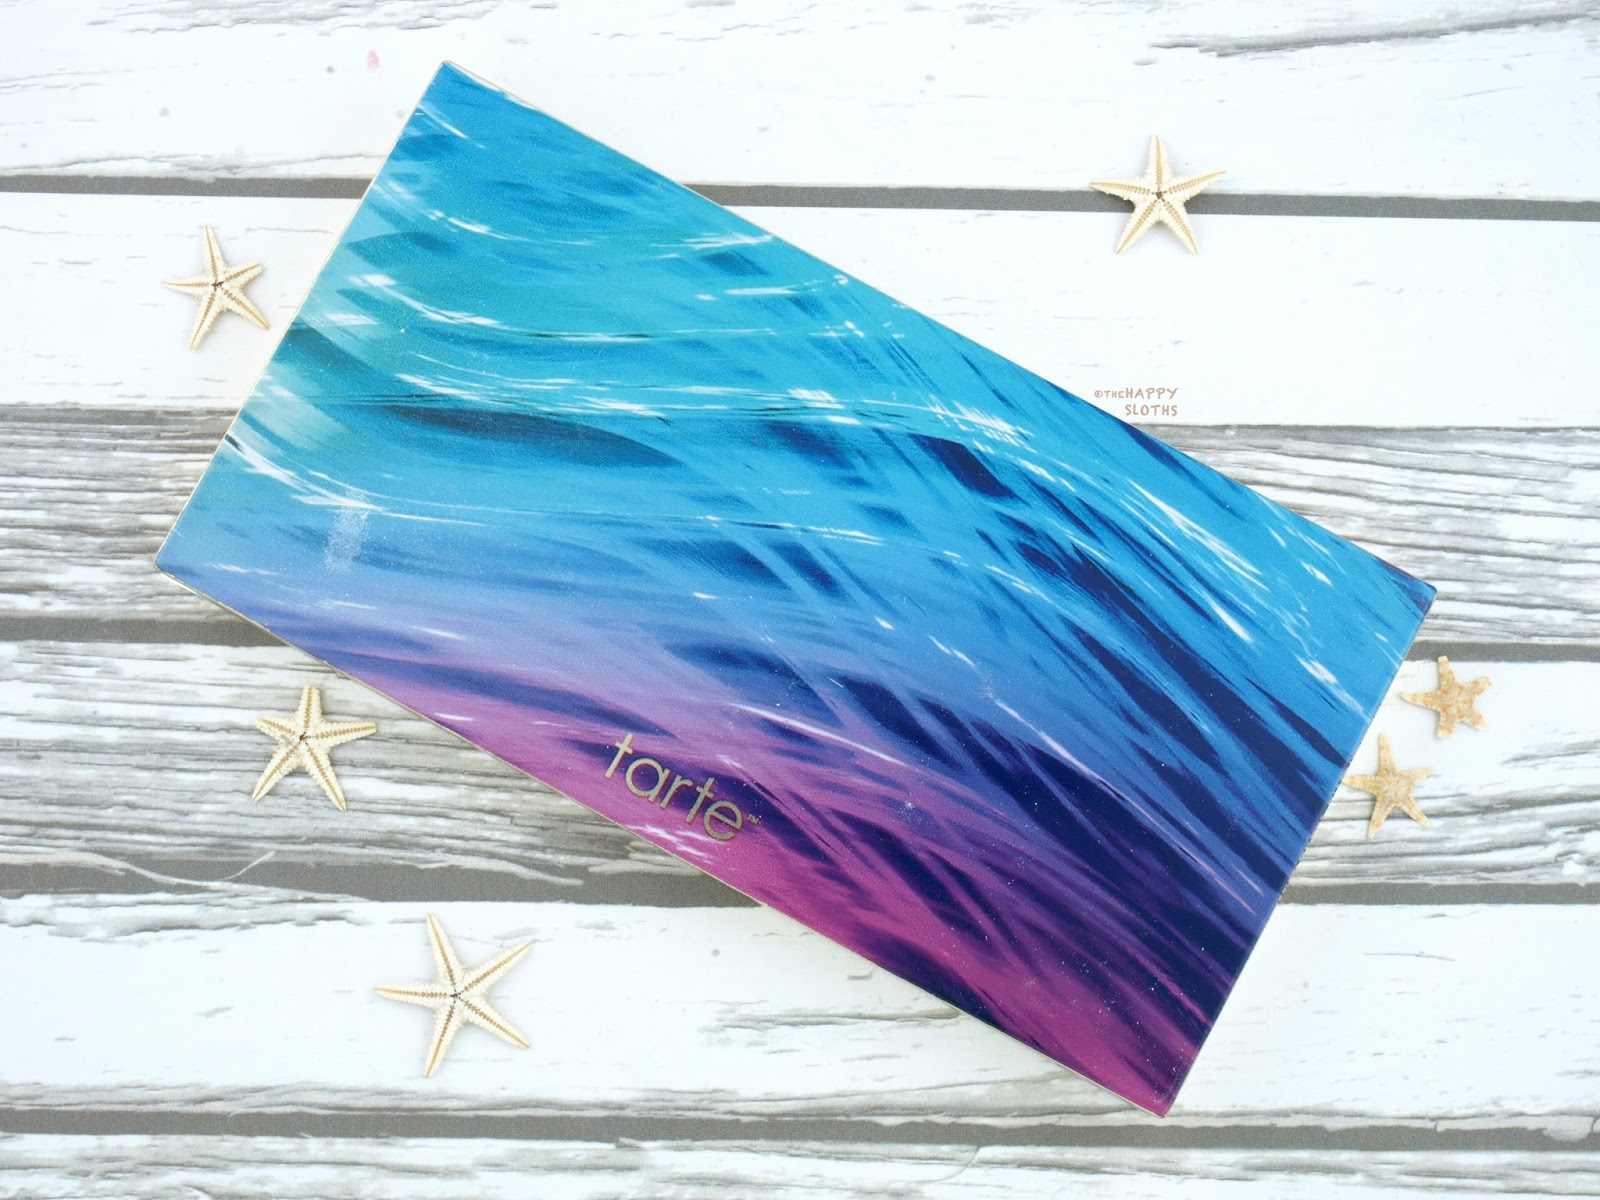 Tarte Summer 2017 Rainforest of the Sea Skin Twinkle Lighting Palette Vol.II: Review and Swatches